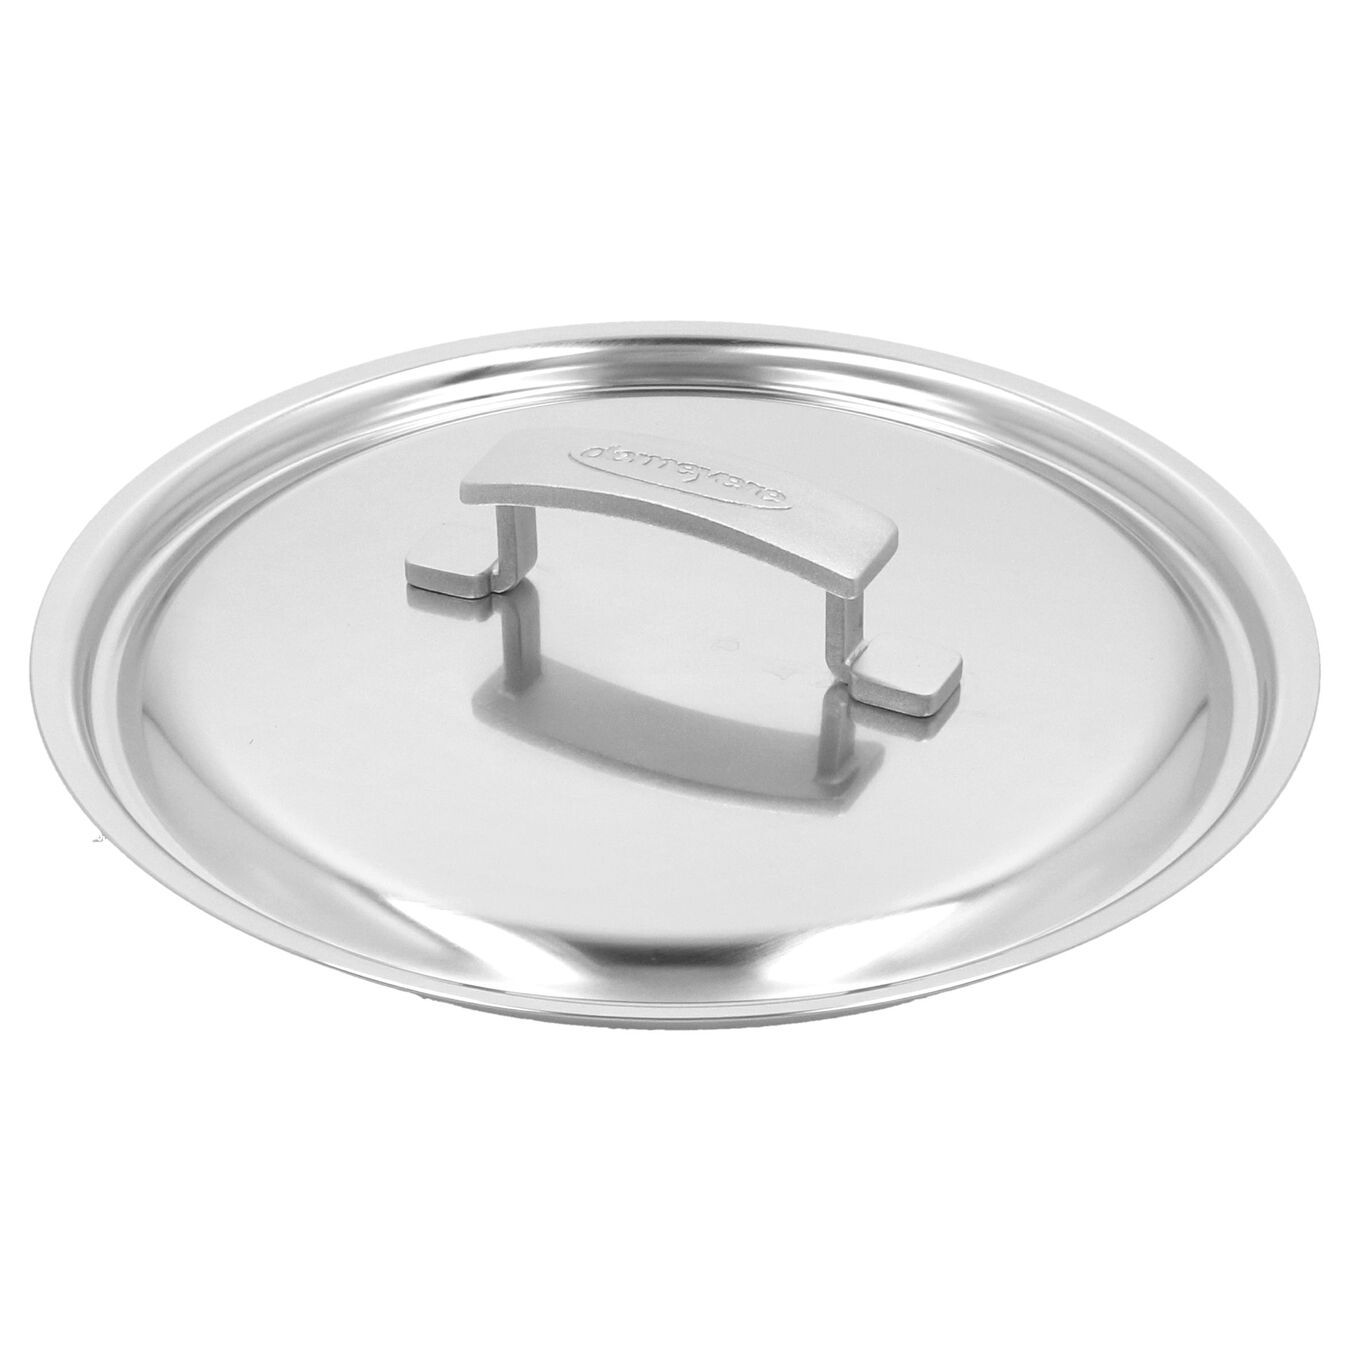 9.5-inch Saute pan with lid, 18/10 Stainless Steel ,,large 5